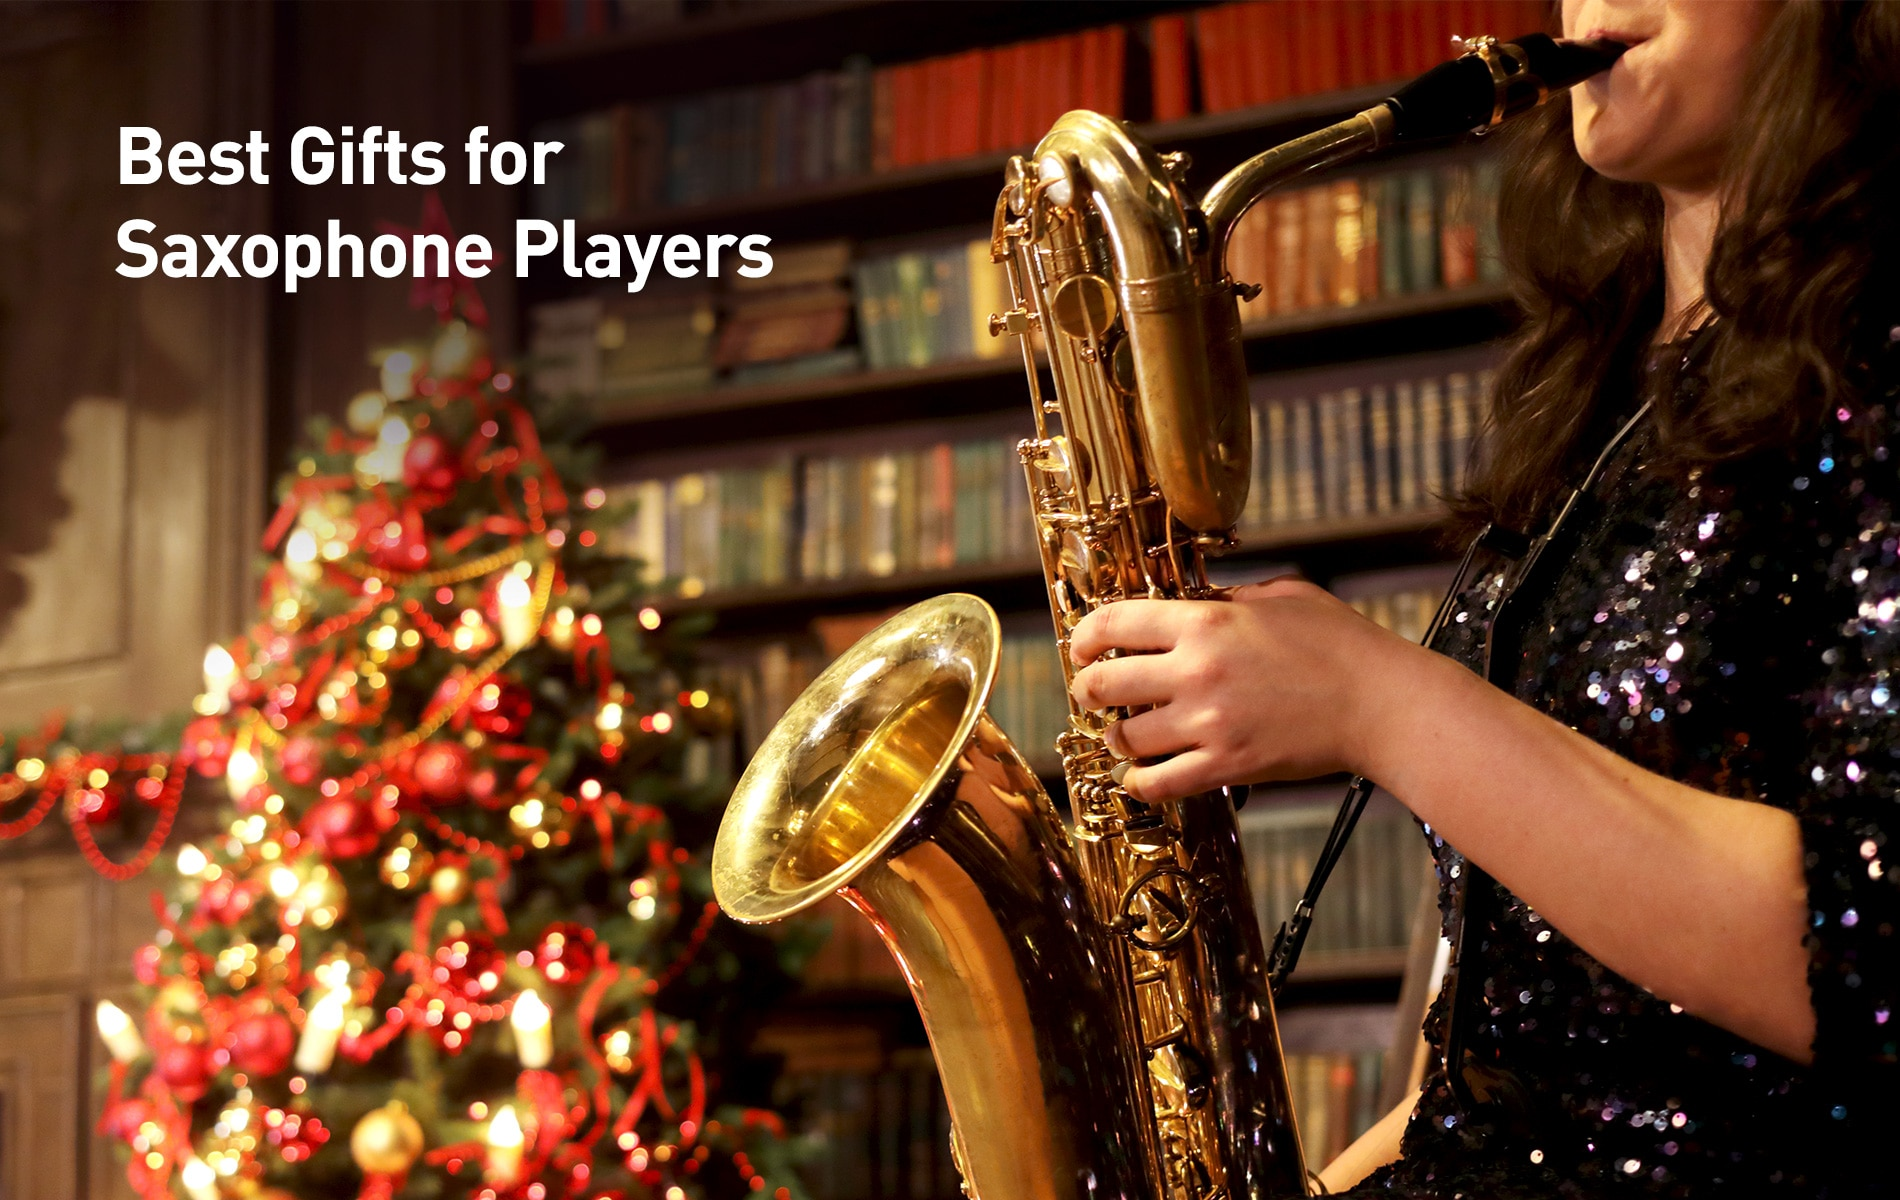 The Best Gifts for Saxophone Players